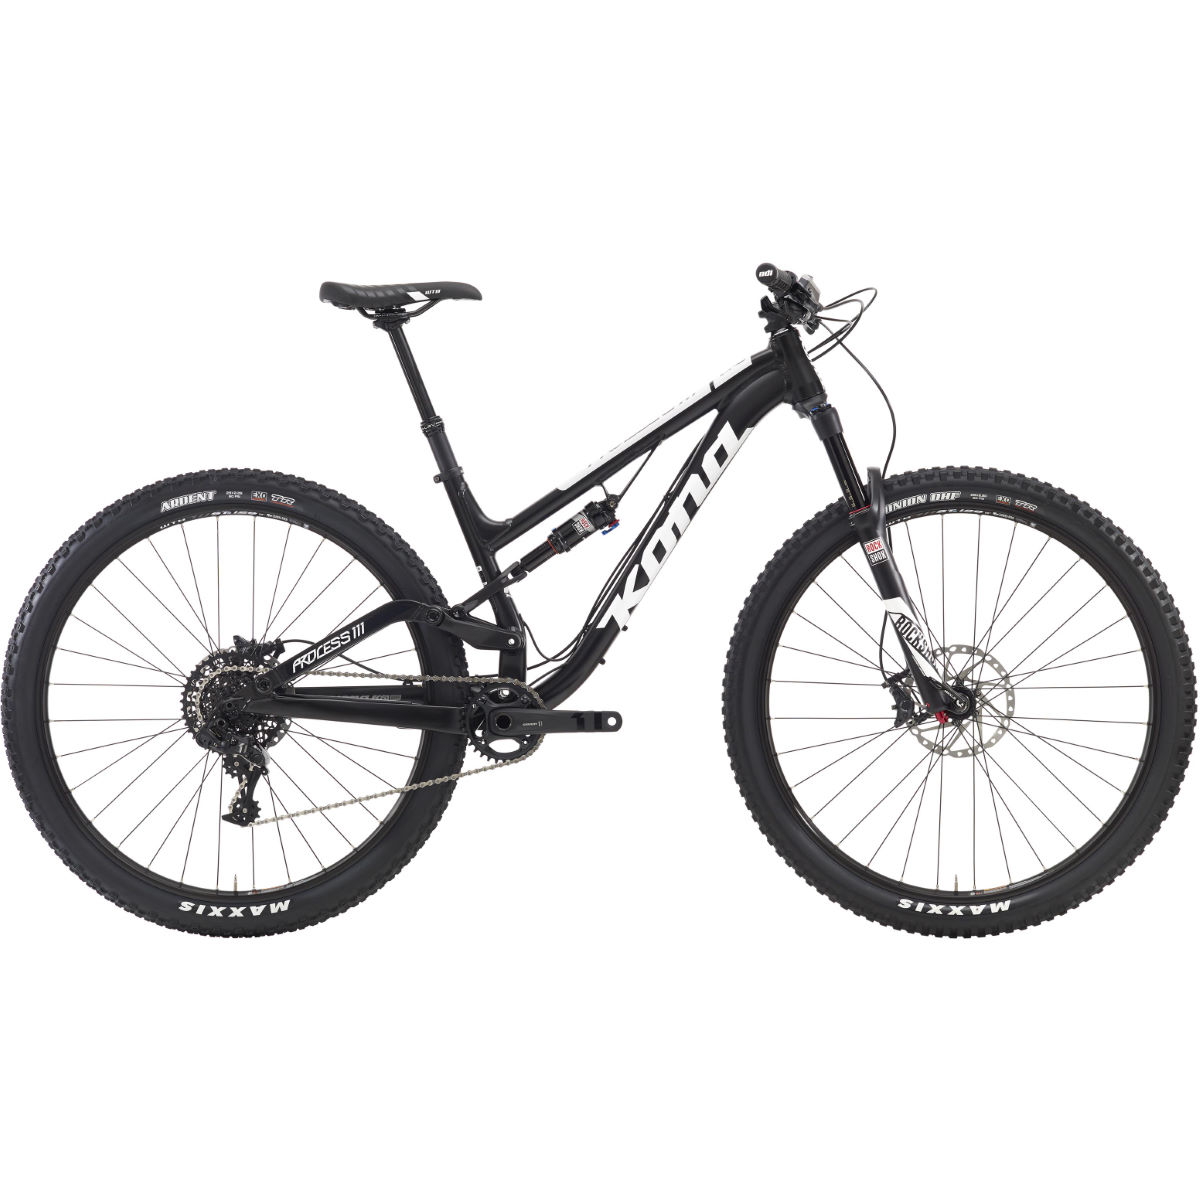 VTT Kona Process 111 (2016) - S Stock Bike Matte Black